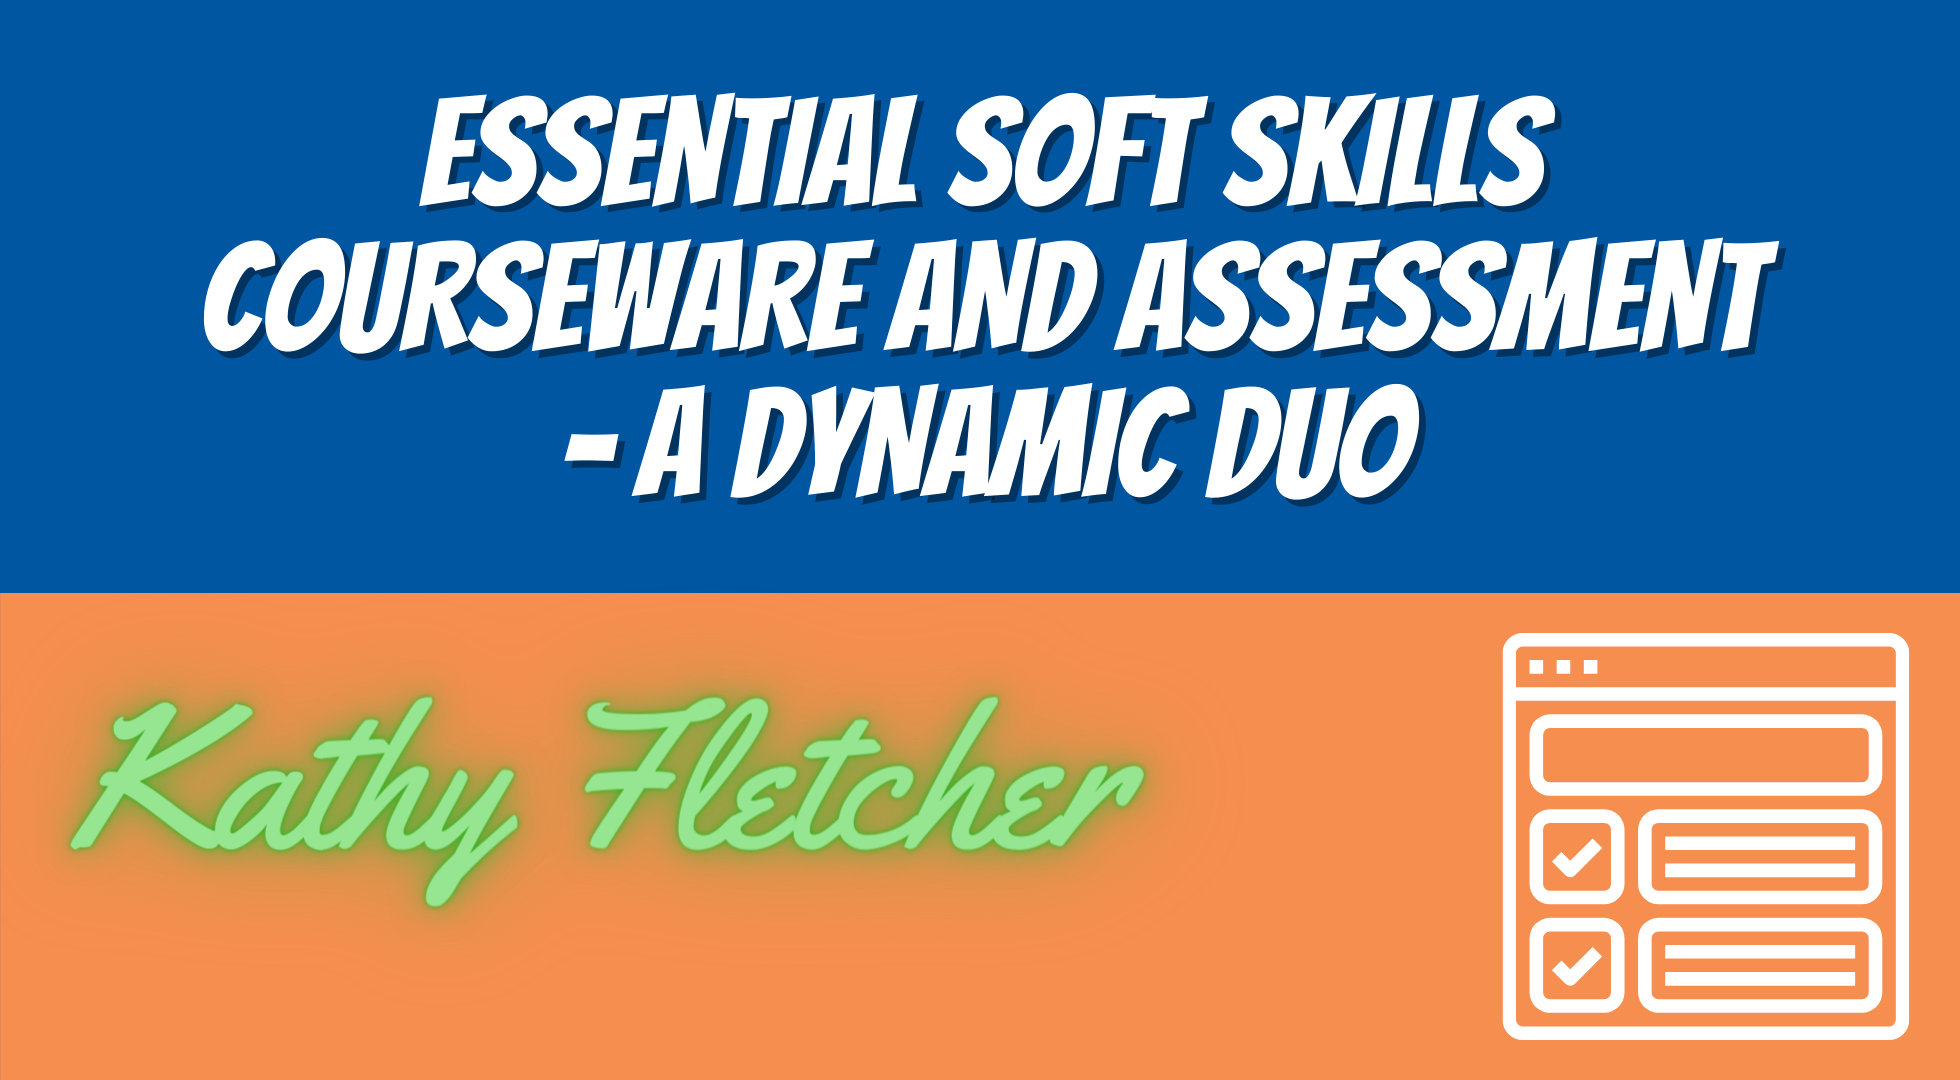 Essential Soft Skills Courseware and Assessment – A Dynamic Duo